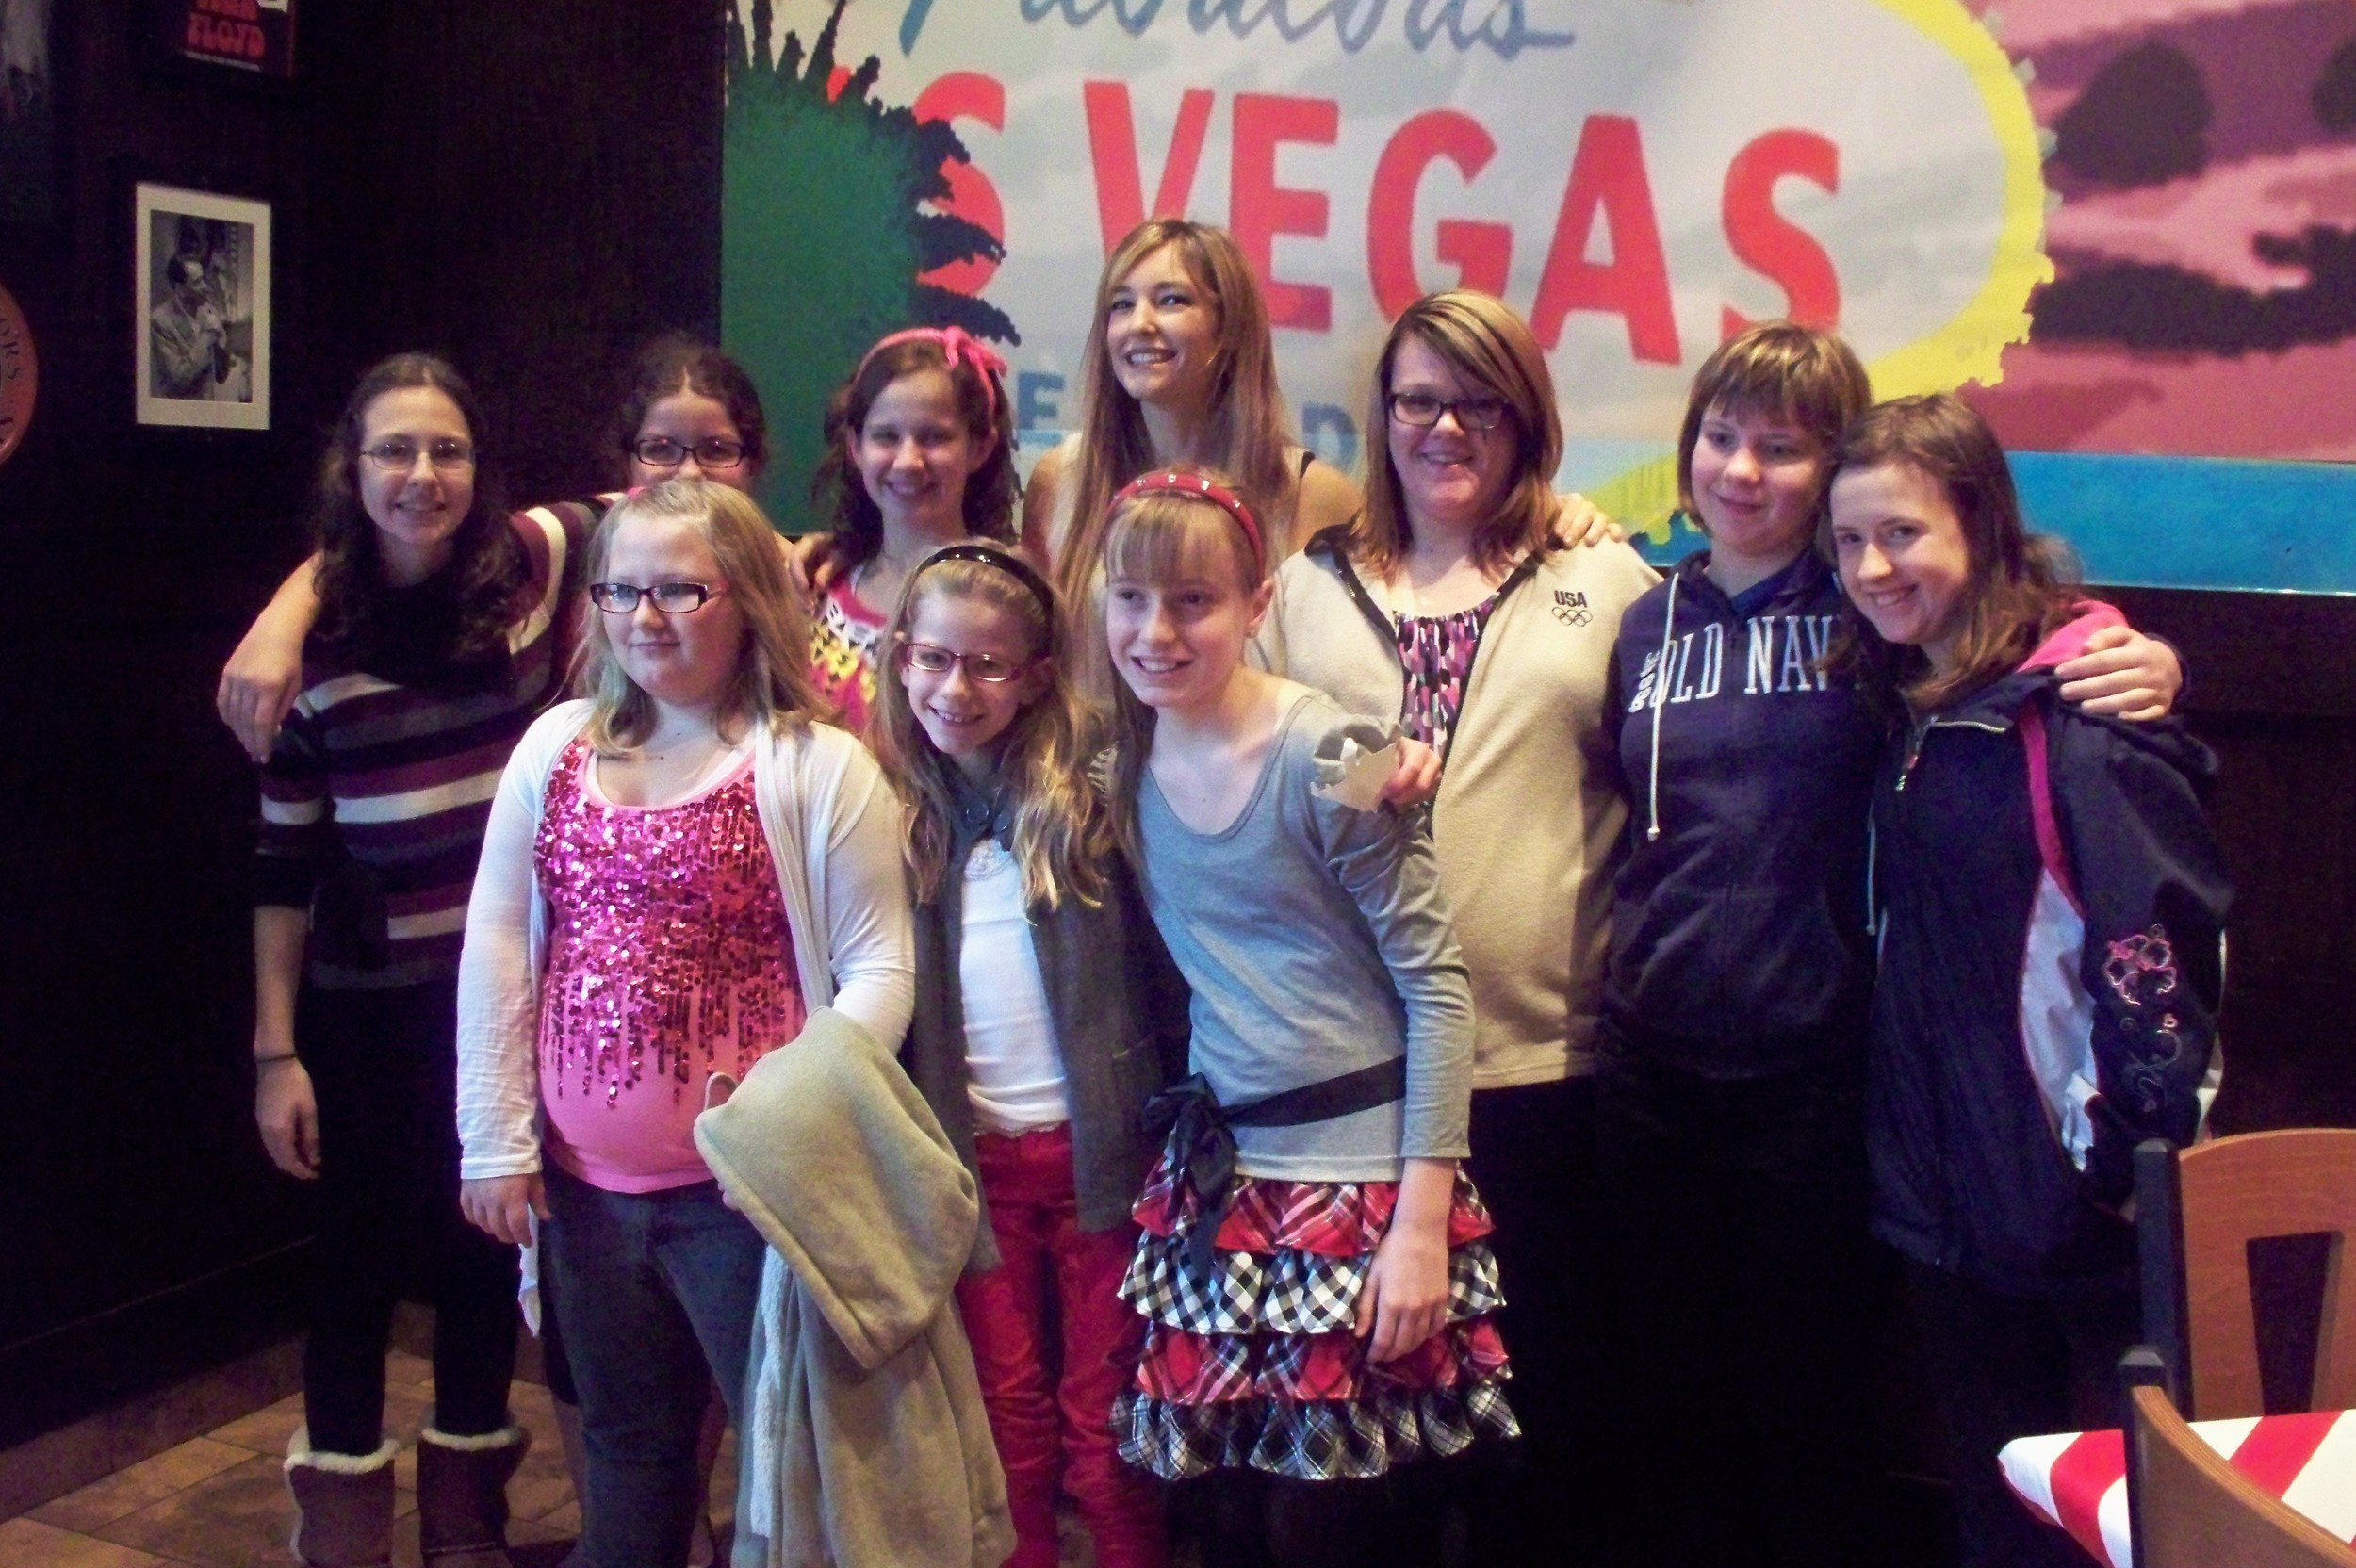 I had the pleasure of meeting these young ladies at the show in Pittsburgh, PA. It was fun to share with them about being a musician and a music therapist, as I remembered exactly what I felt like when I was a Girl Scout at their age! The Girl Scouts is an amazing organization providing adventure and leadership opportunities for young women.